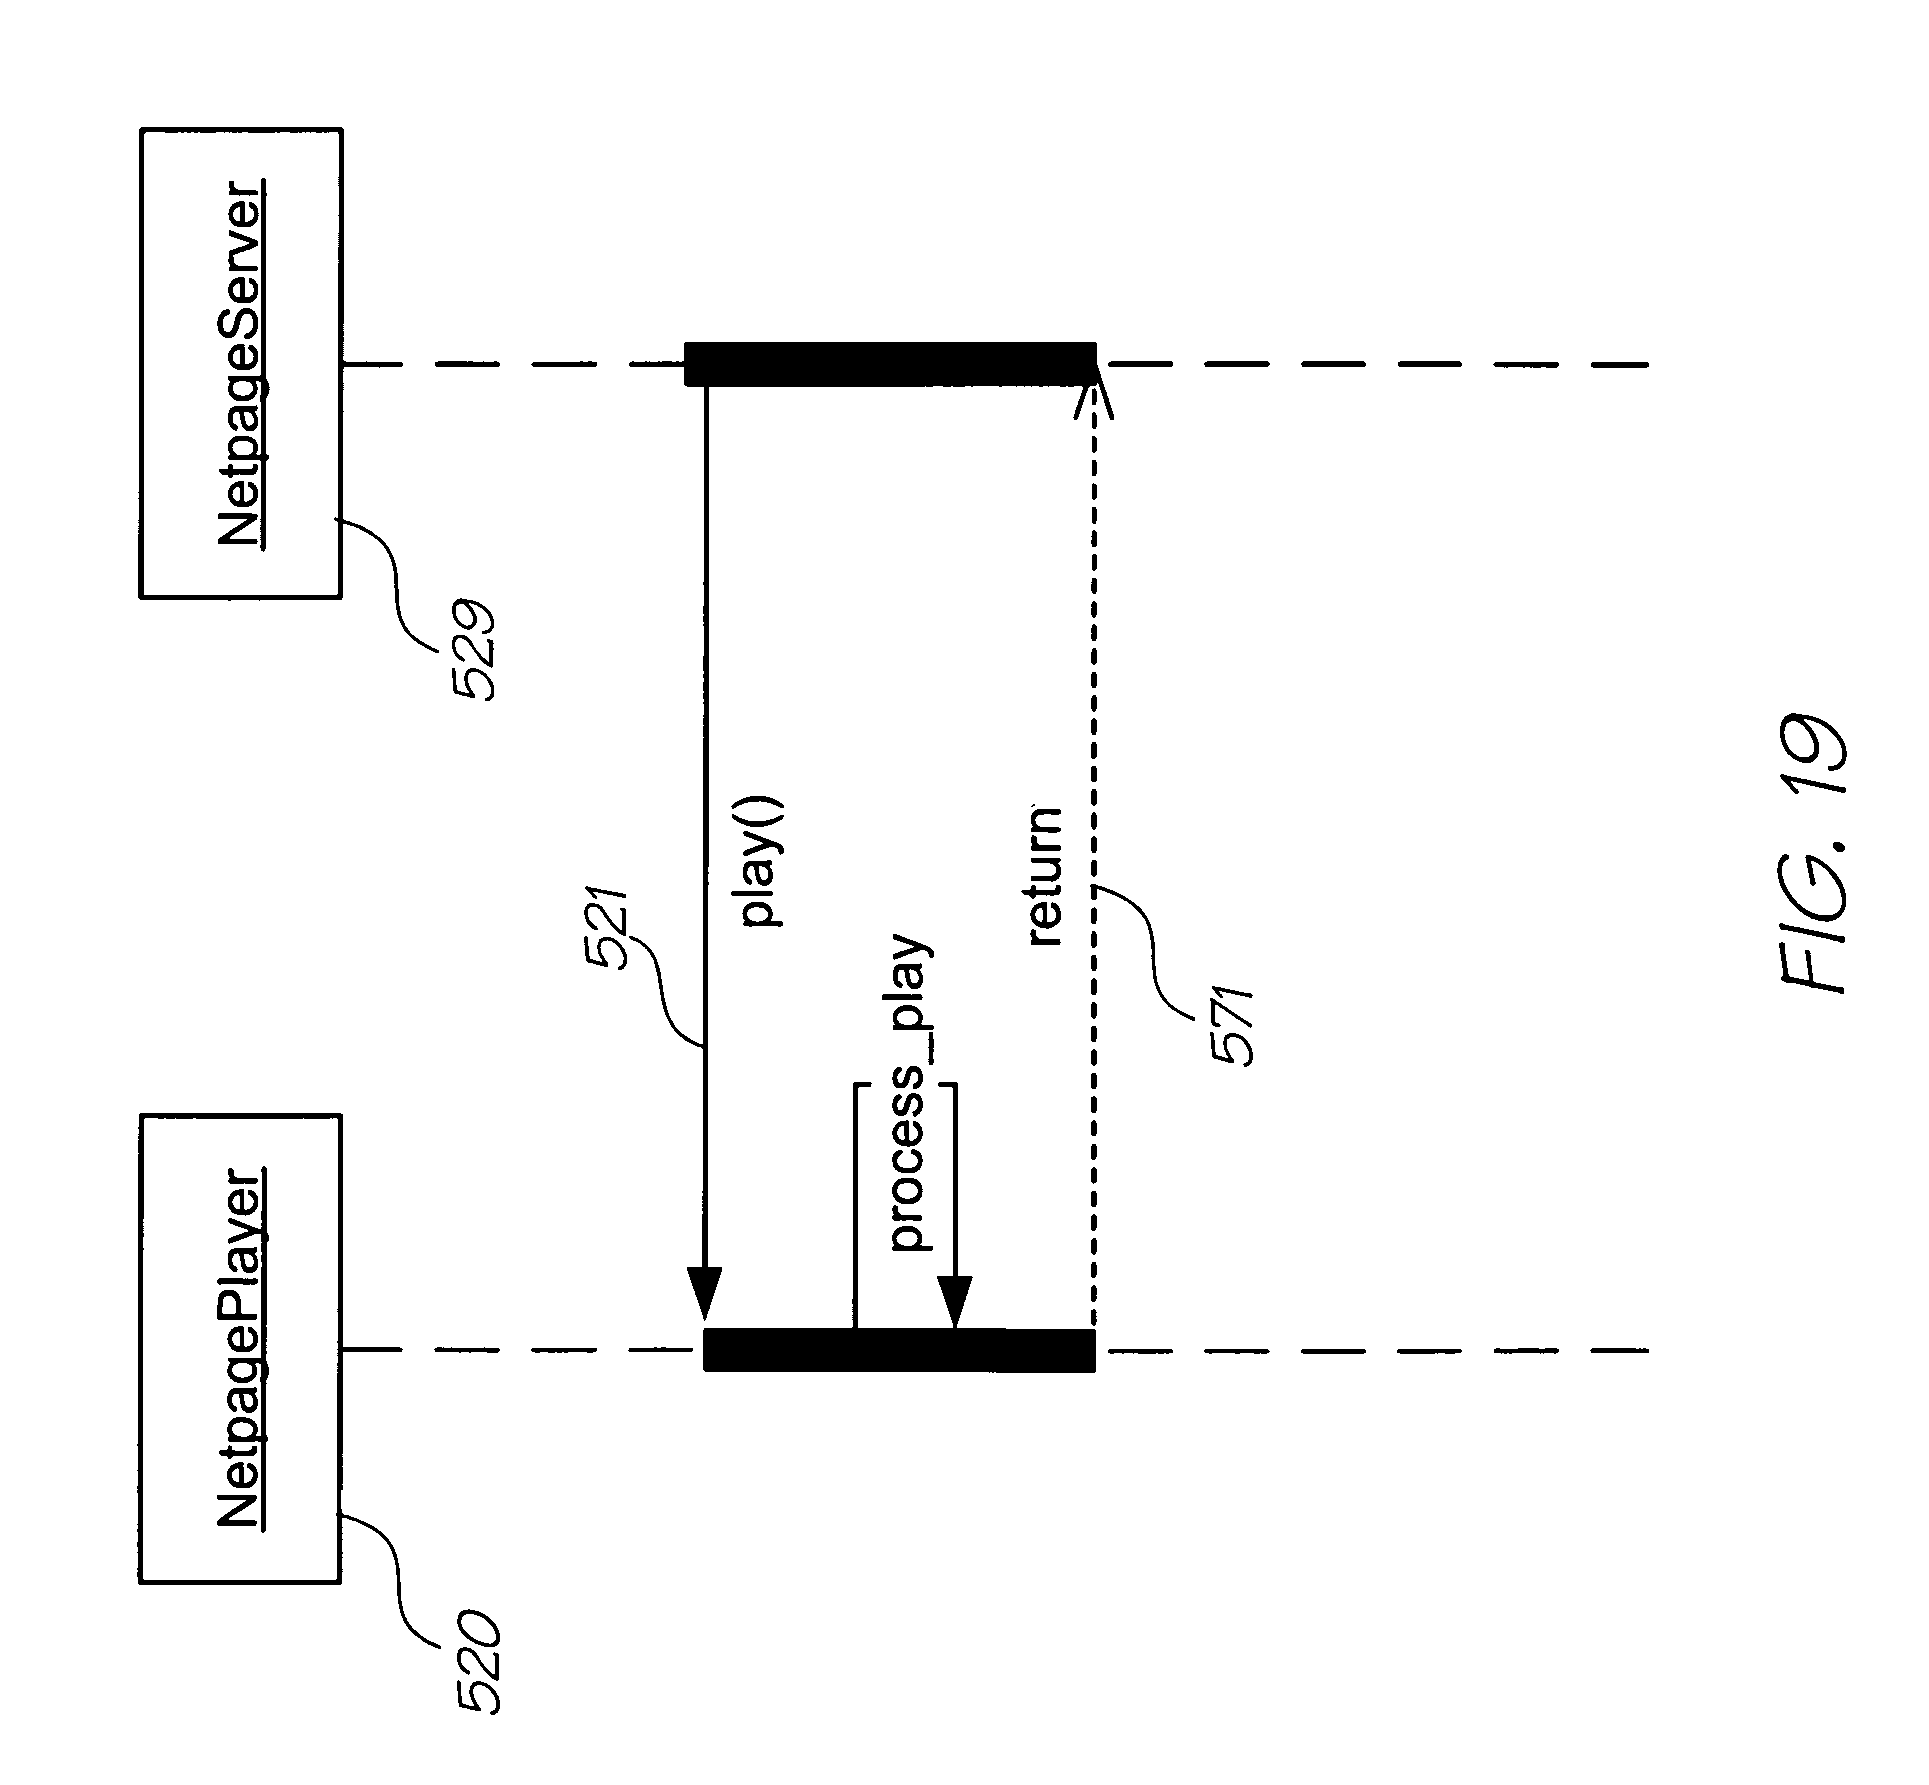 Patent Us 7991493 B2 Faxphone Wiring Diagram